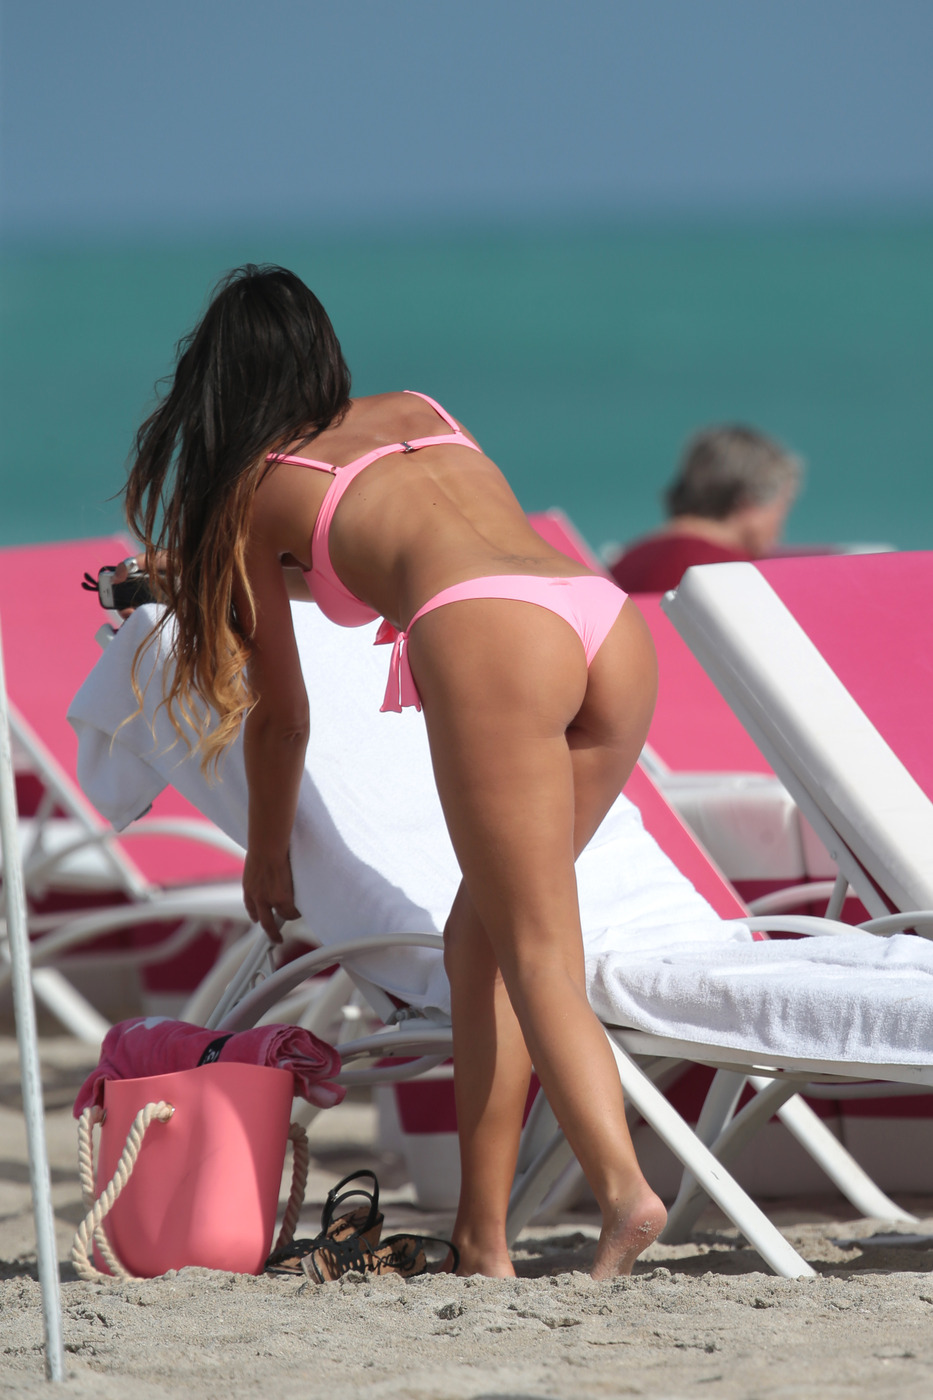 Italian model Claudia Romani wears a pink bikini to the beach in Miami